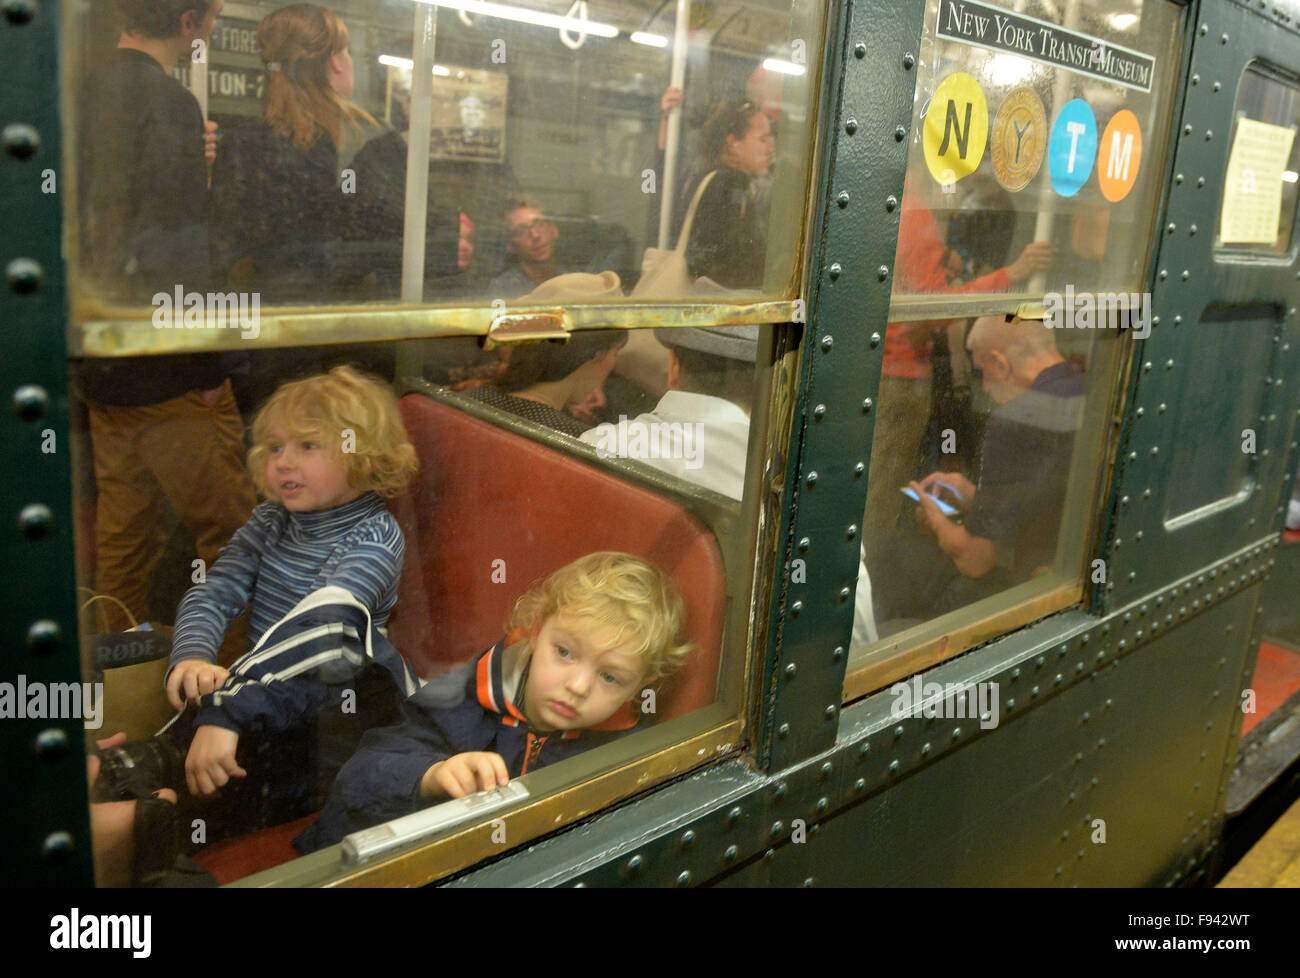 New York, USA. 13th Dec, 2015. Children experience antique cars at a subway station in New York City, the United Stock Photo